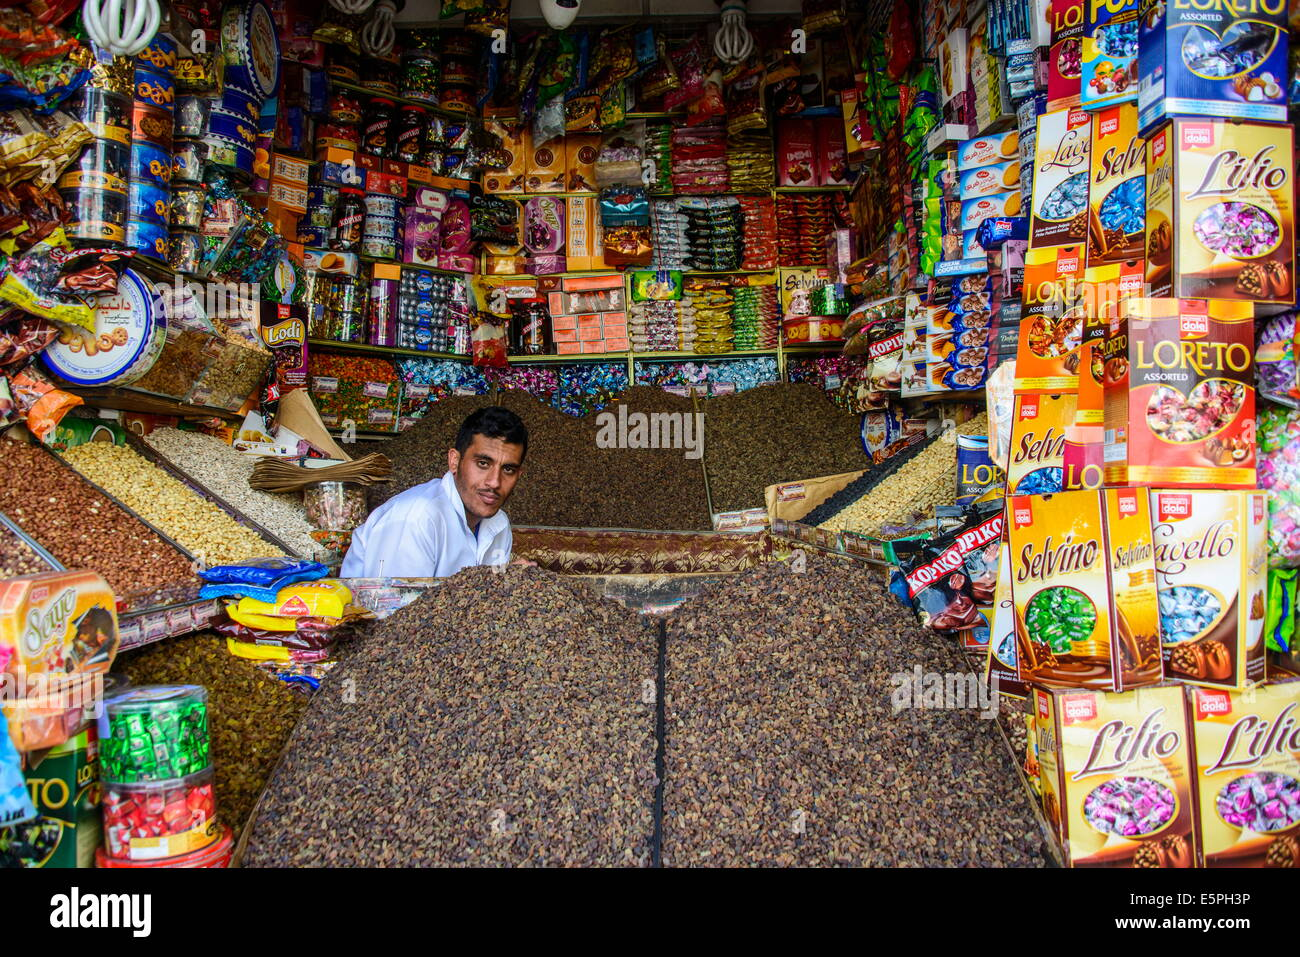 Man sitting in his full shop in the Old Town, UNESCO World Heritage Site, Sanaa, Yemen, Middle East - Stock Image